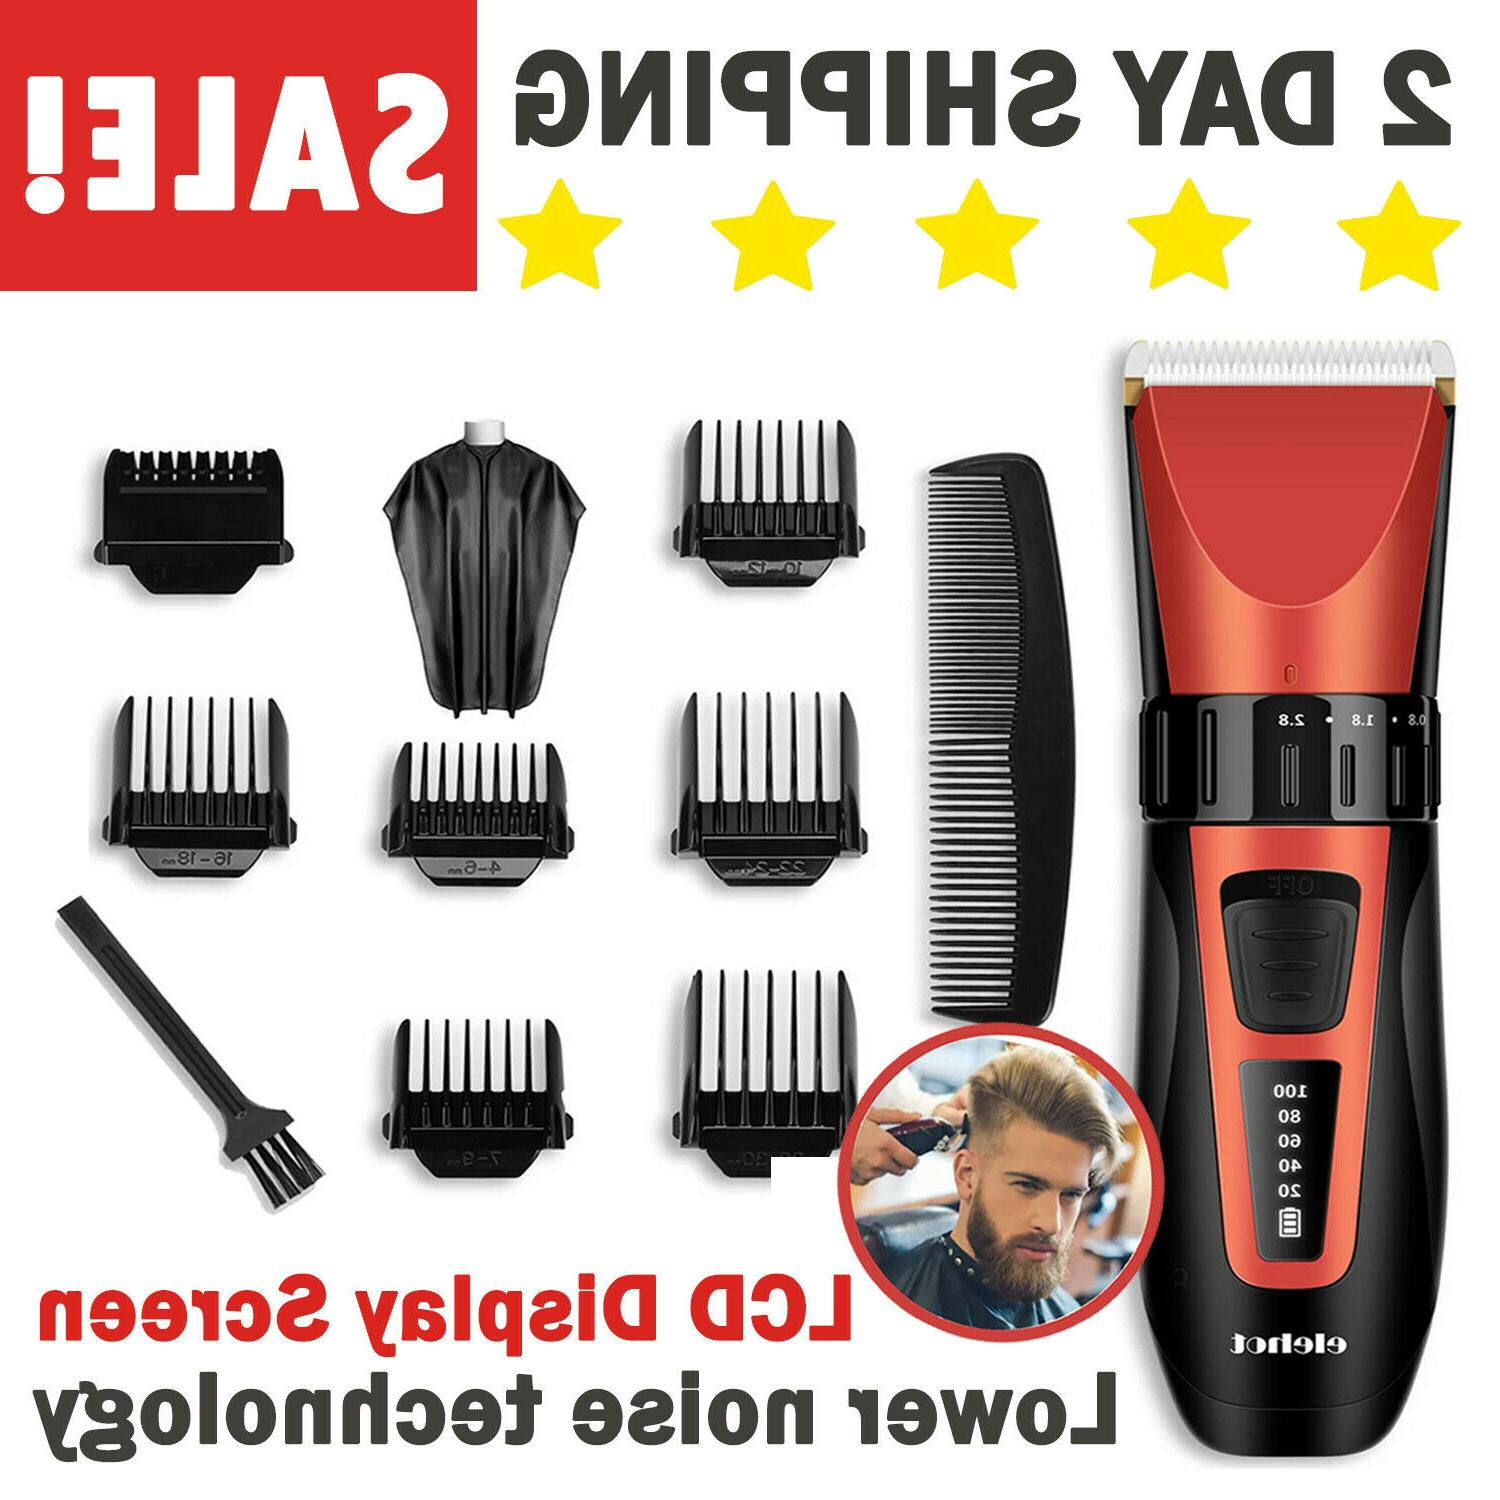 hair clippers trimmers cordless cutting machine grooming